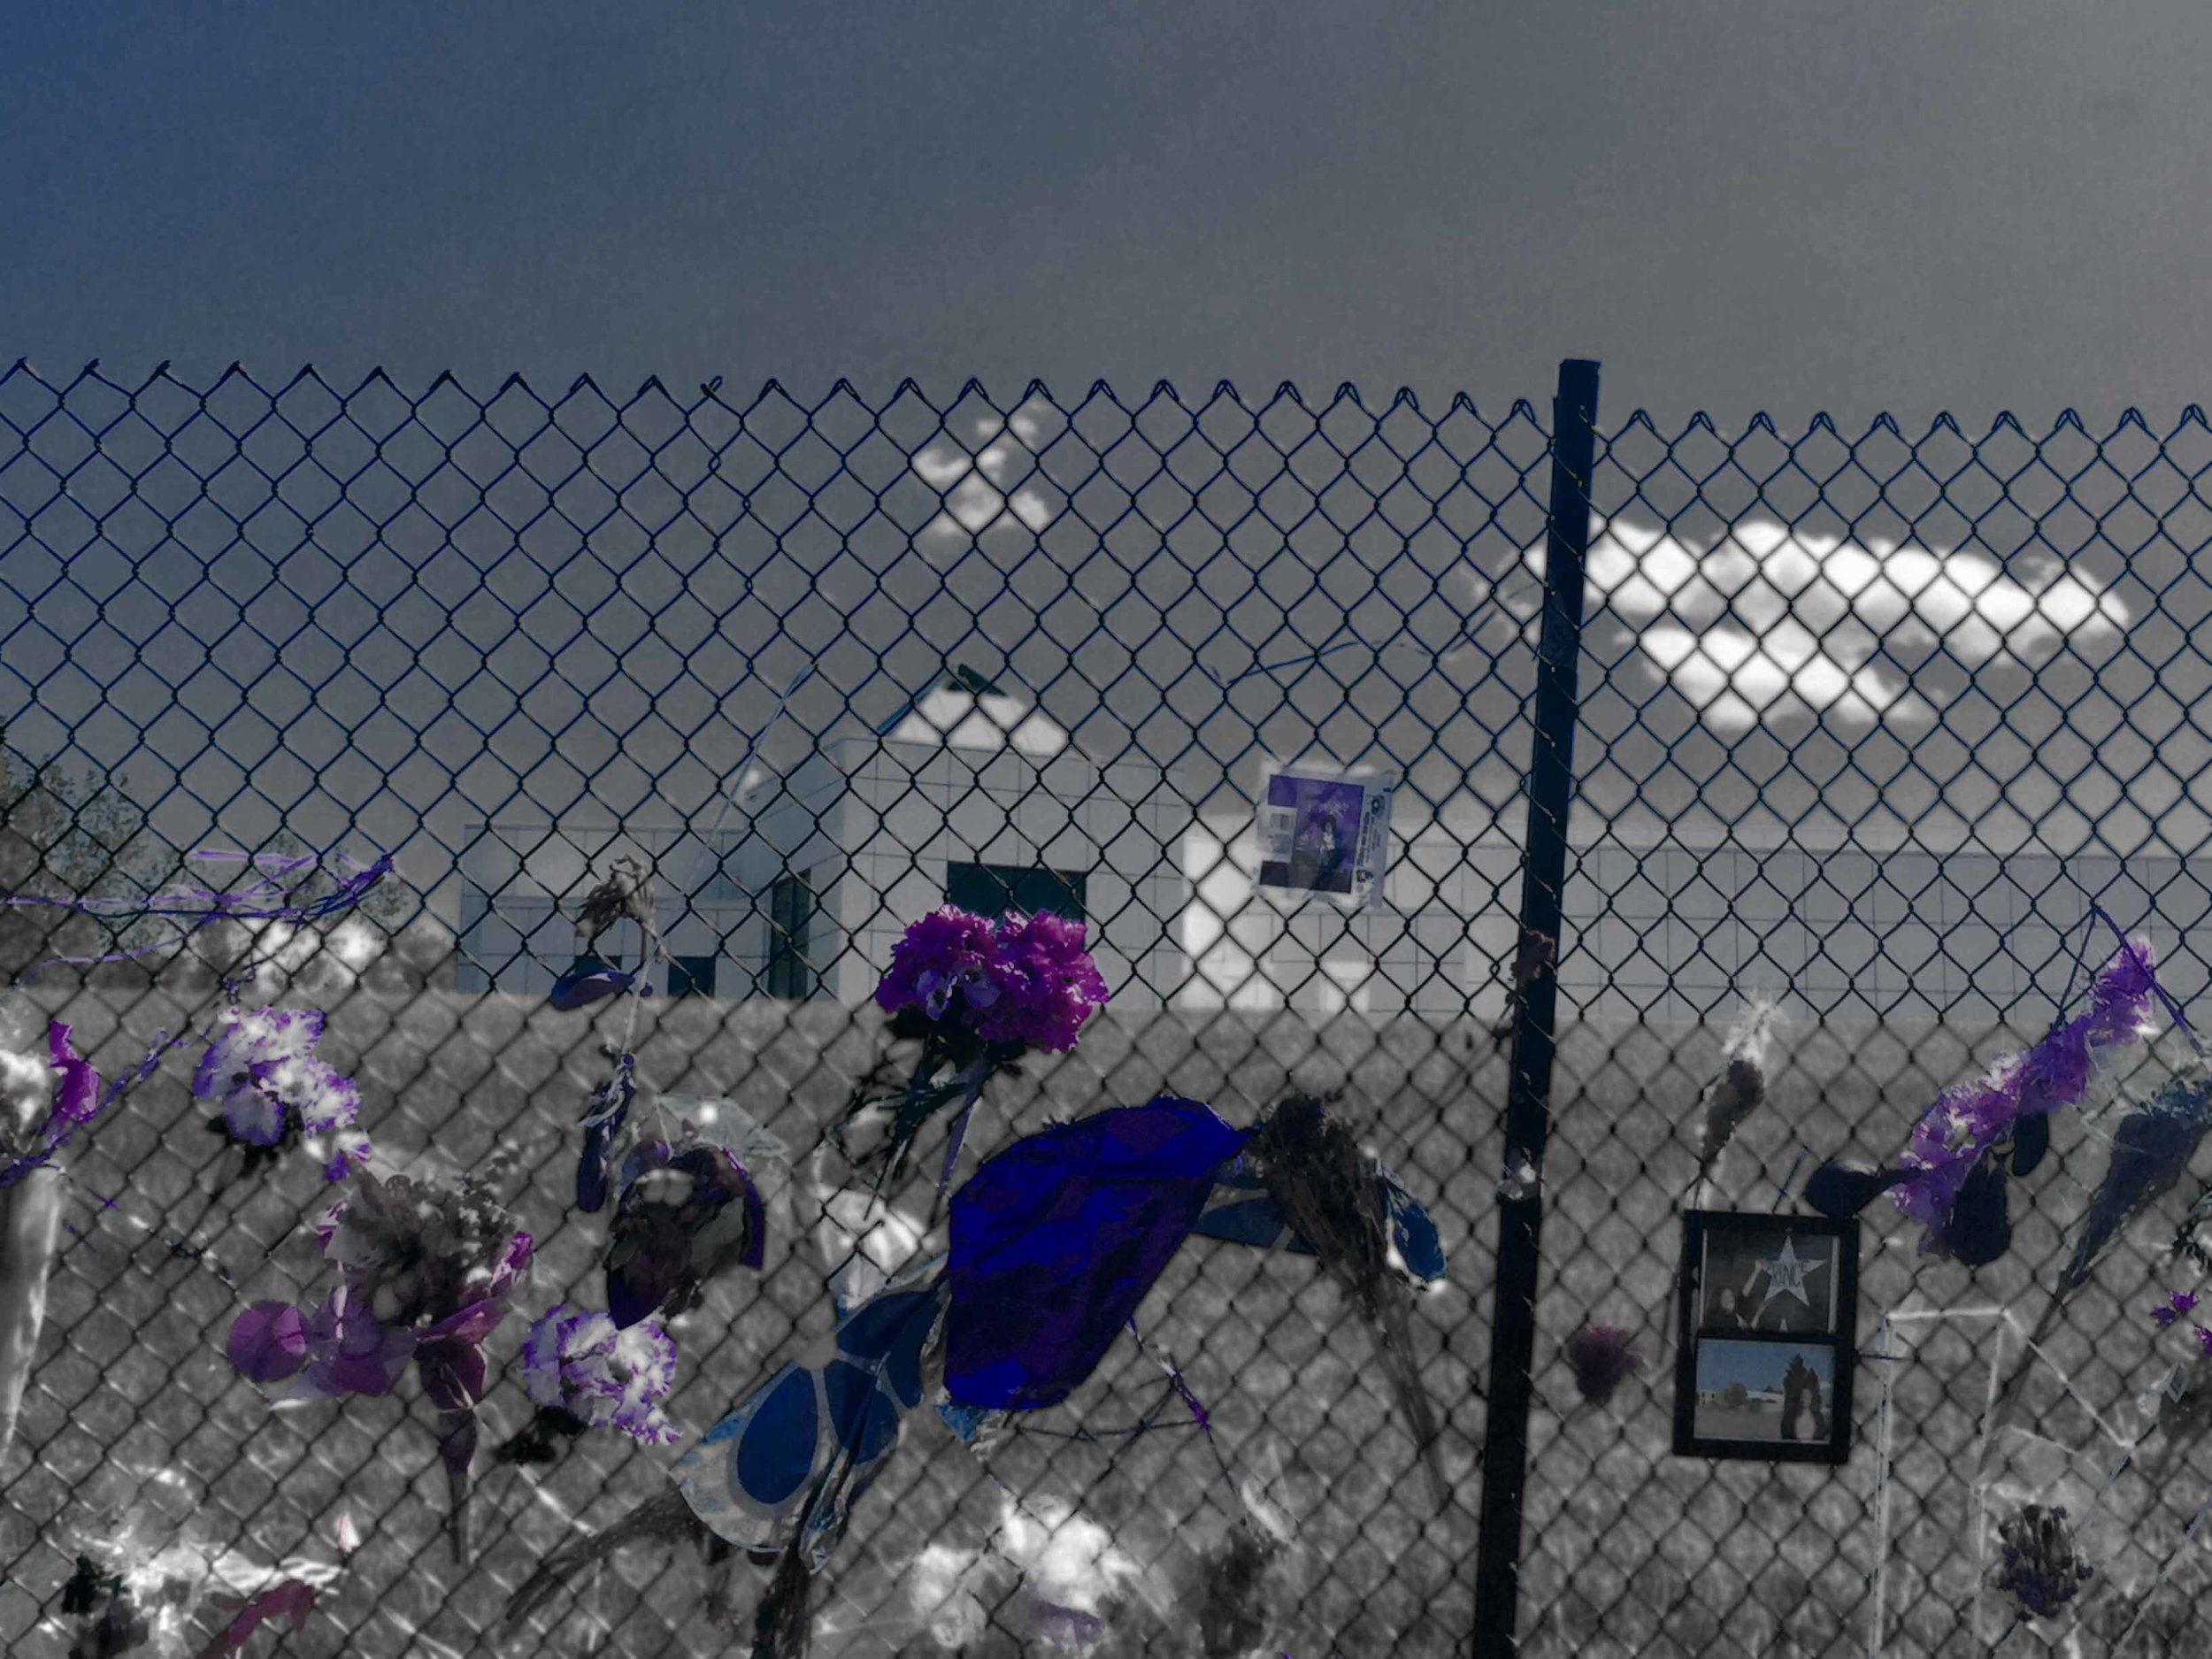 Fence at paisley park. Photo by Doria Di Feo-Muley